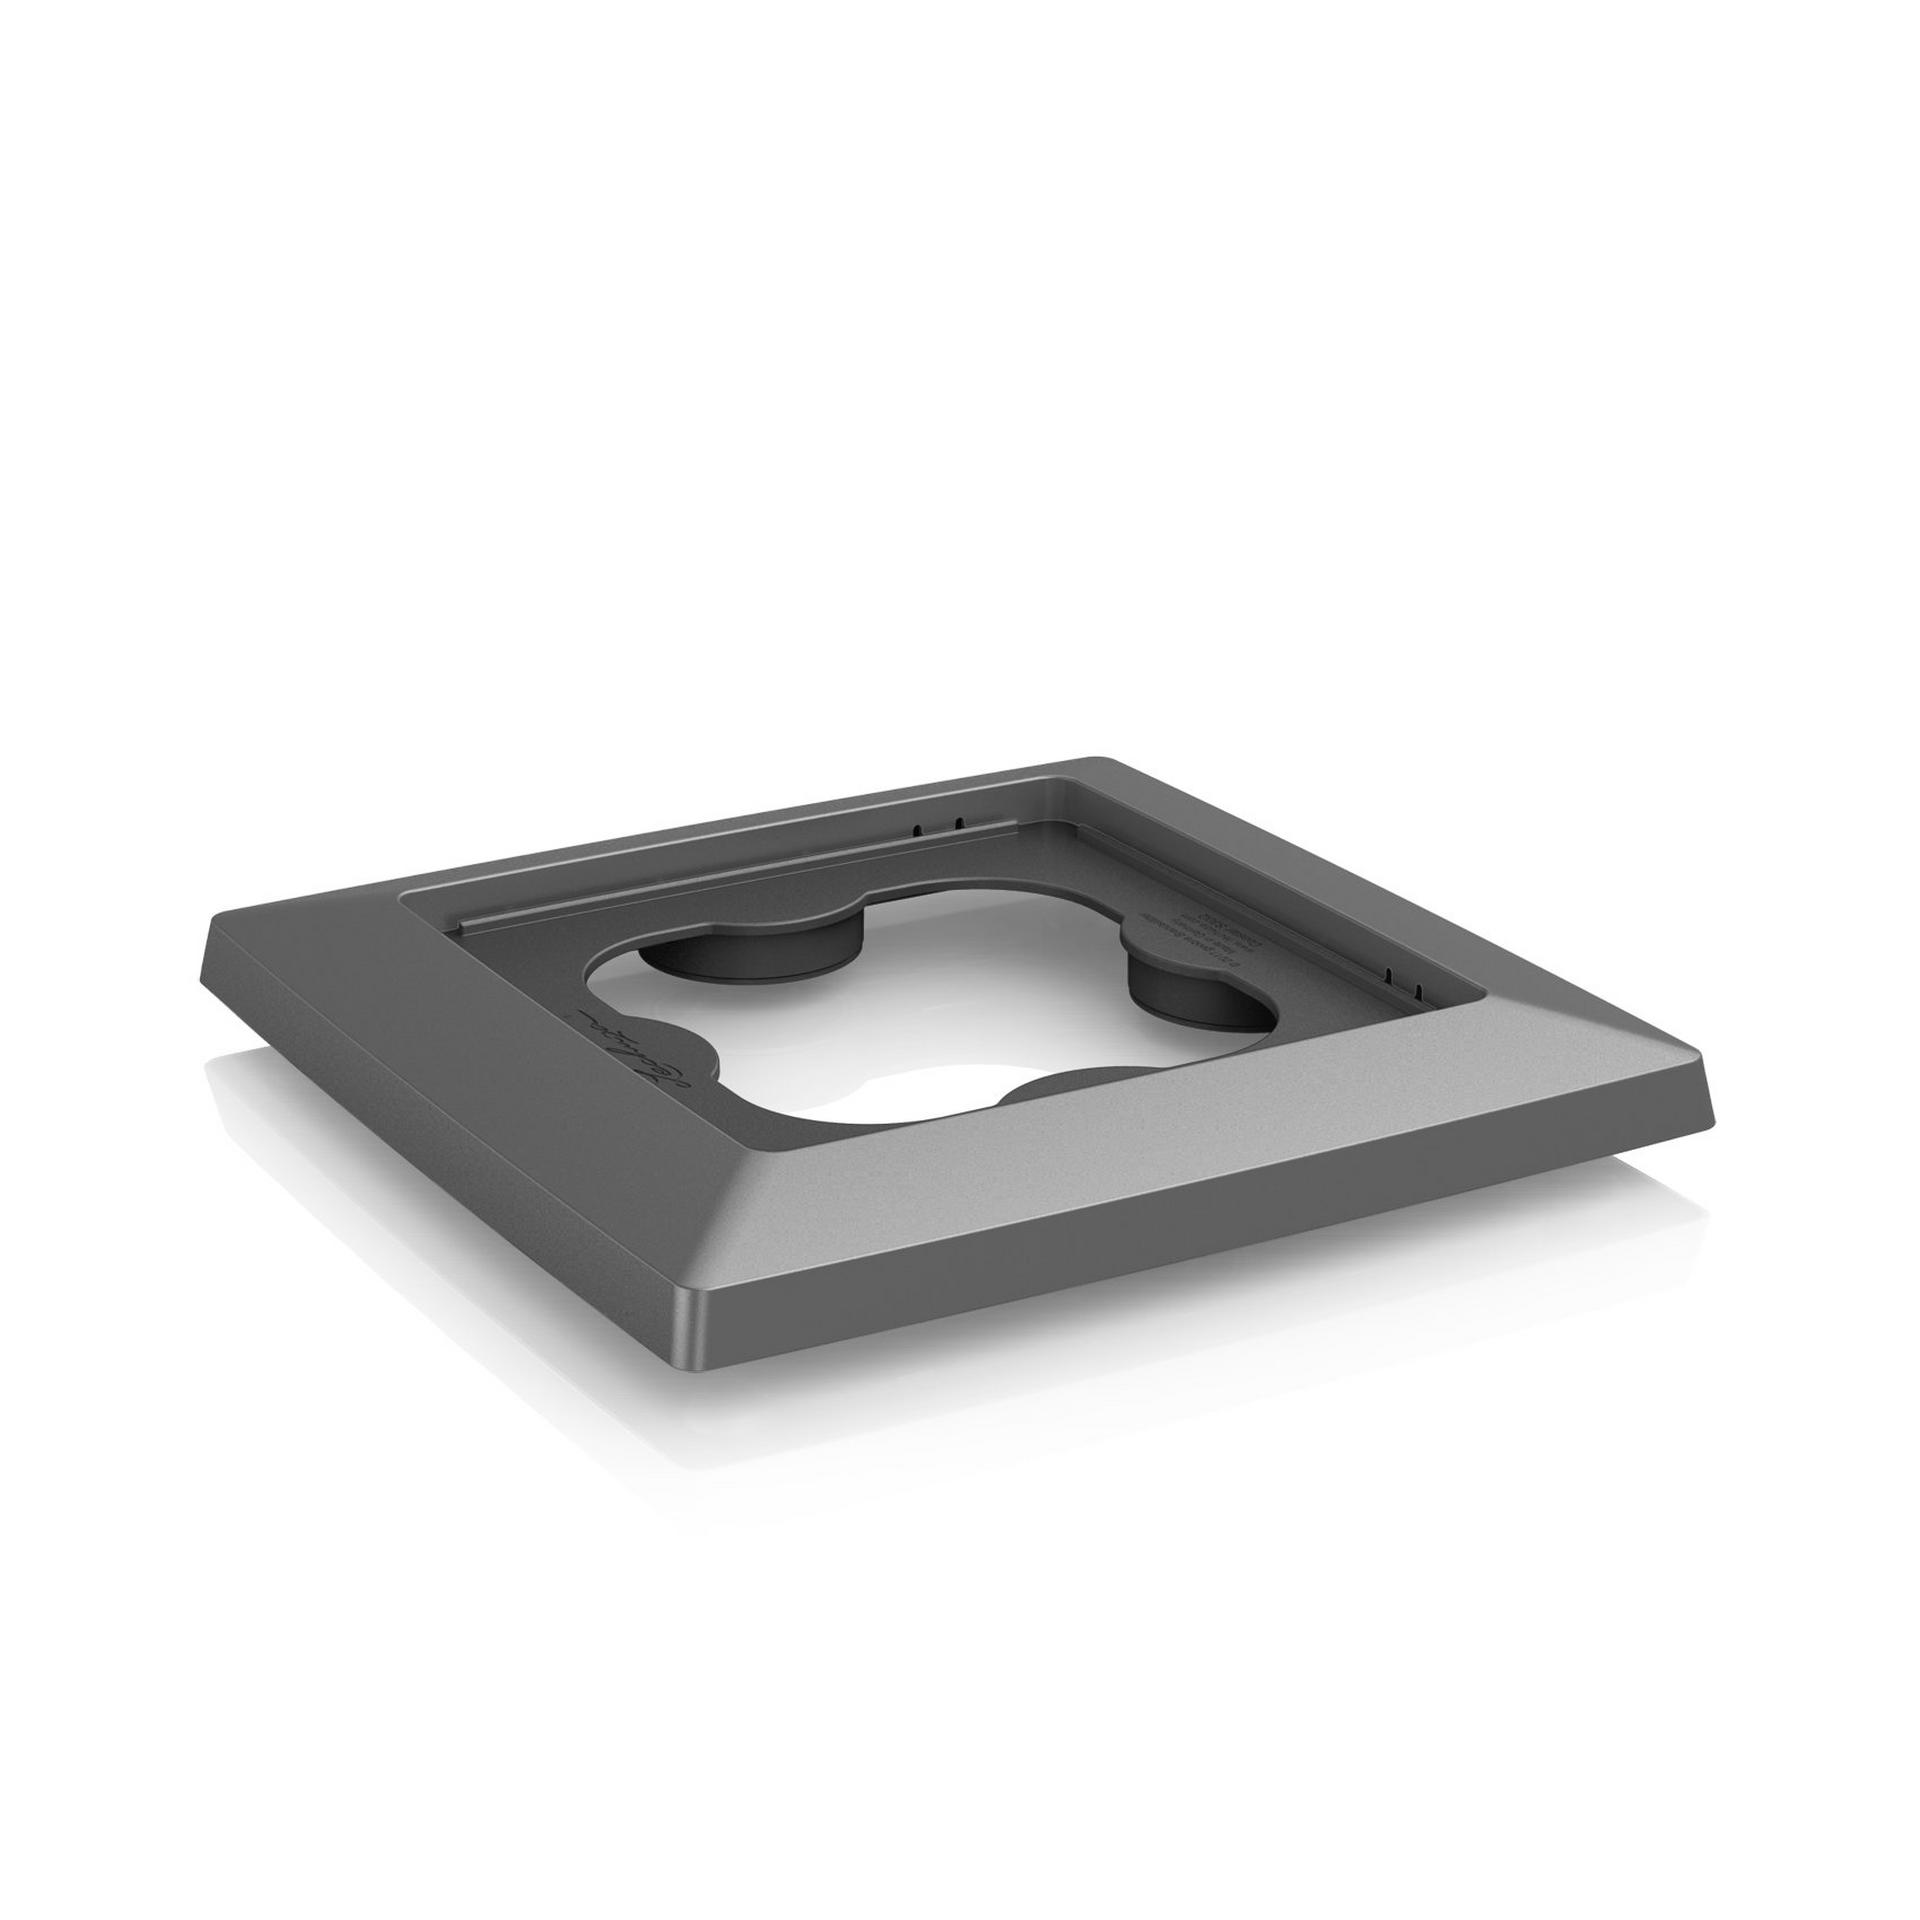 Coaster for CUBICO 30 charcoal